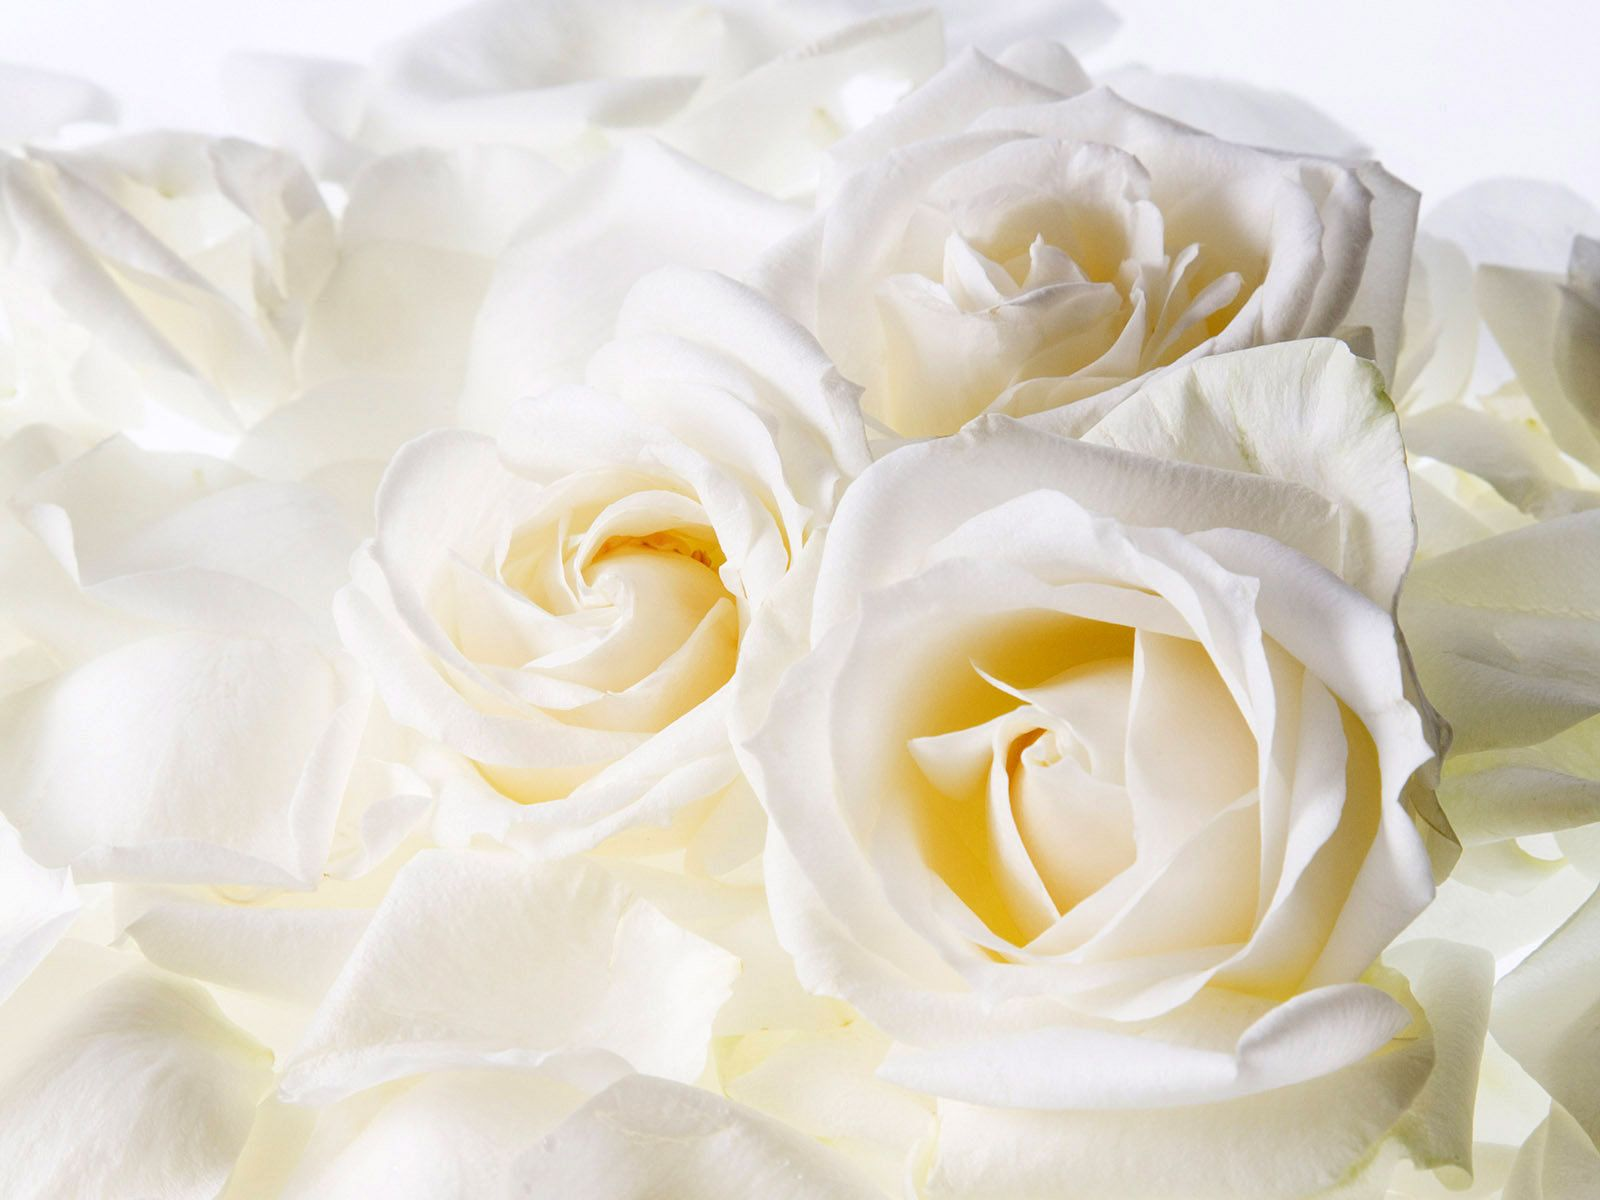 White Flowers Images : Find best latest White Flowers Images in HD ...